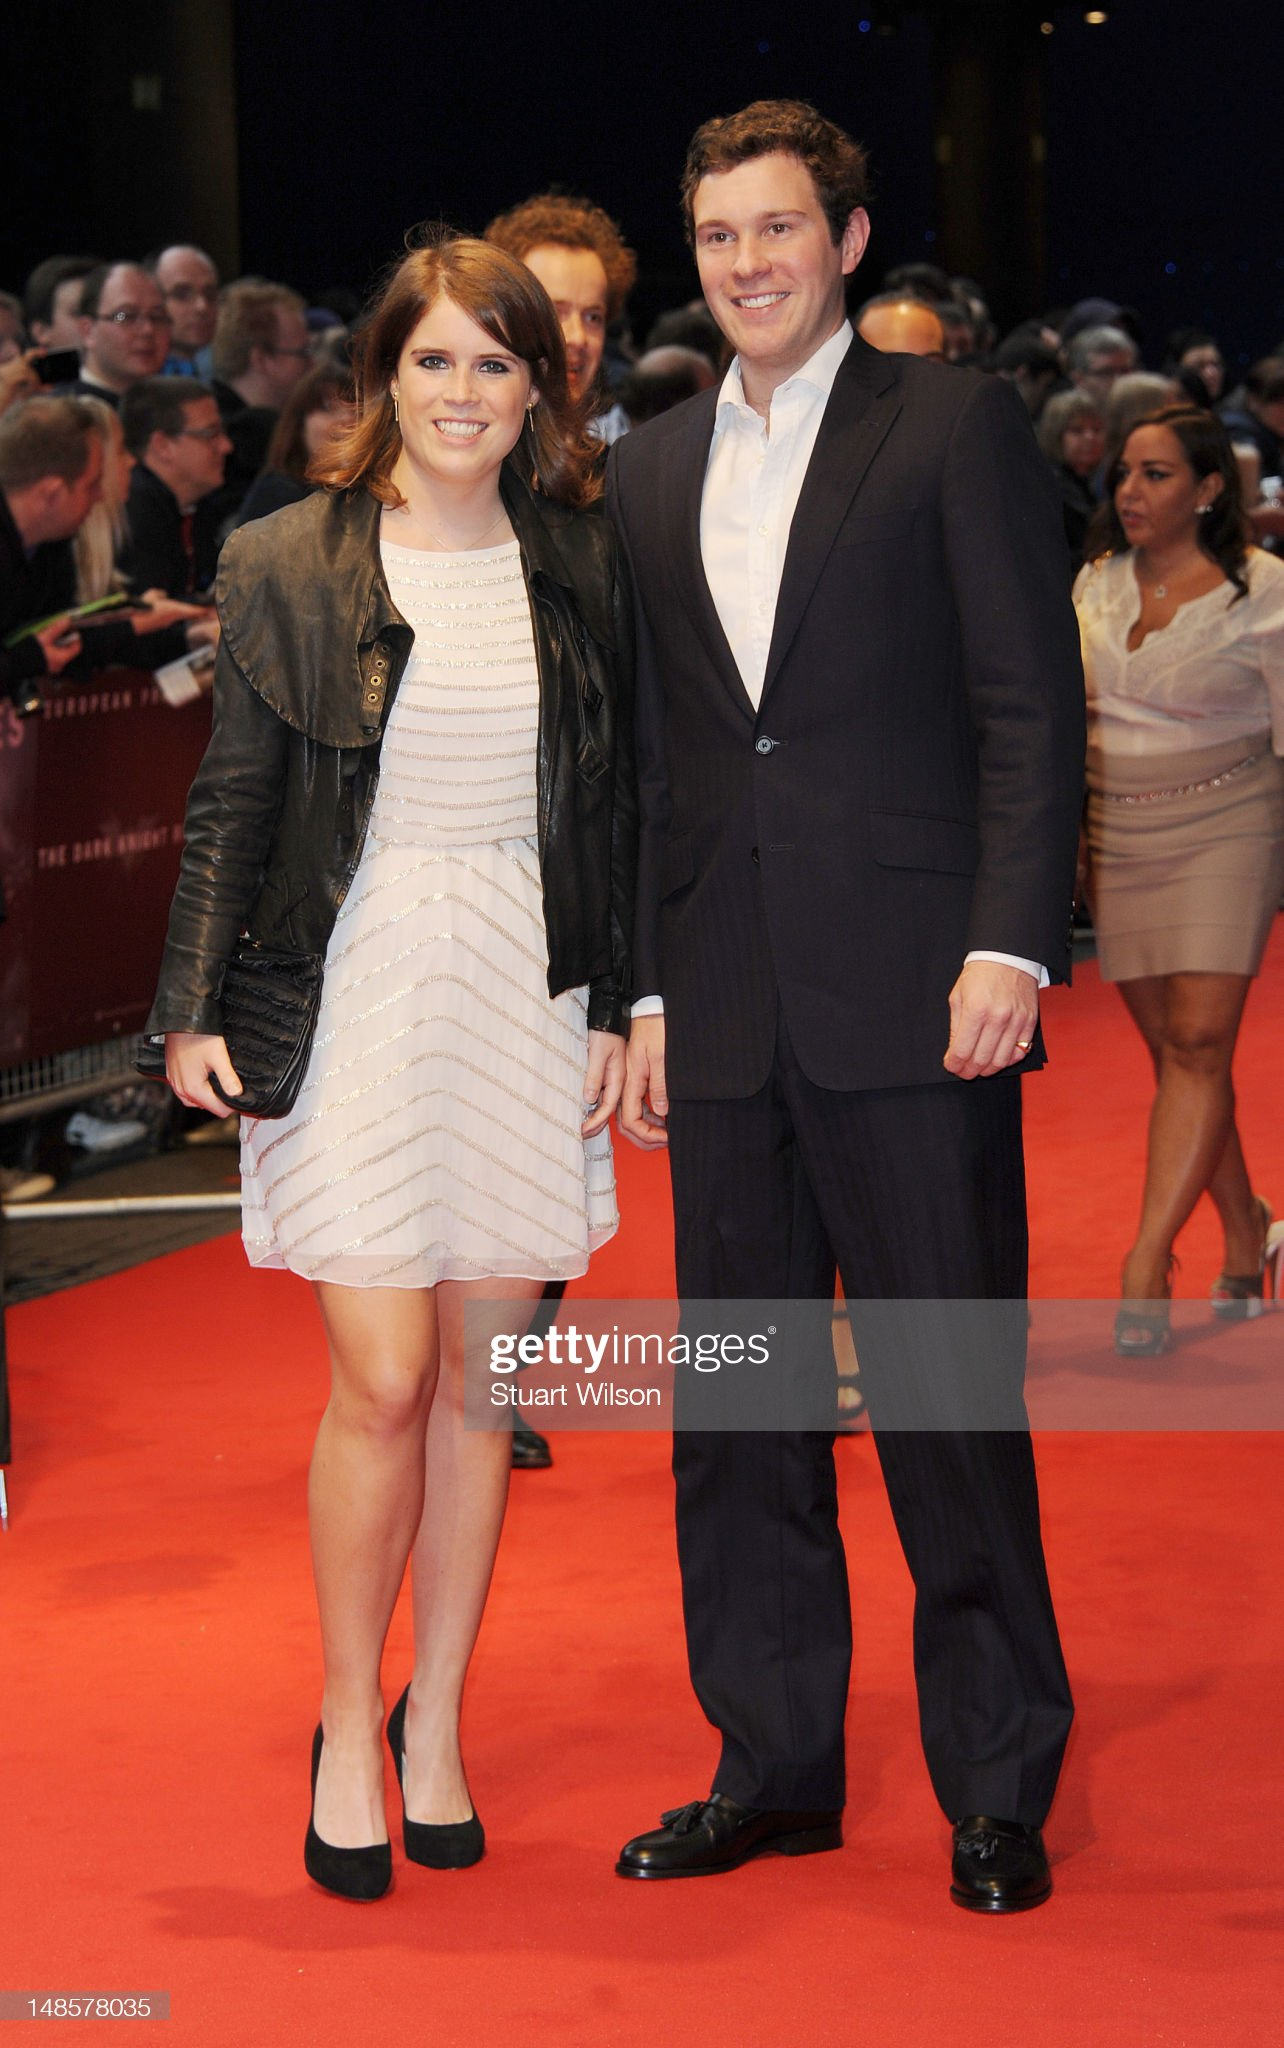 The Dark Knight Rises European Premiere  - Special Screening at The BFI IMAX : News Photo